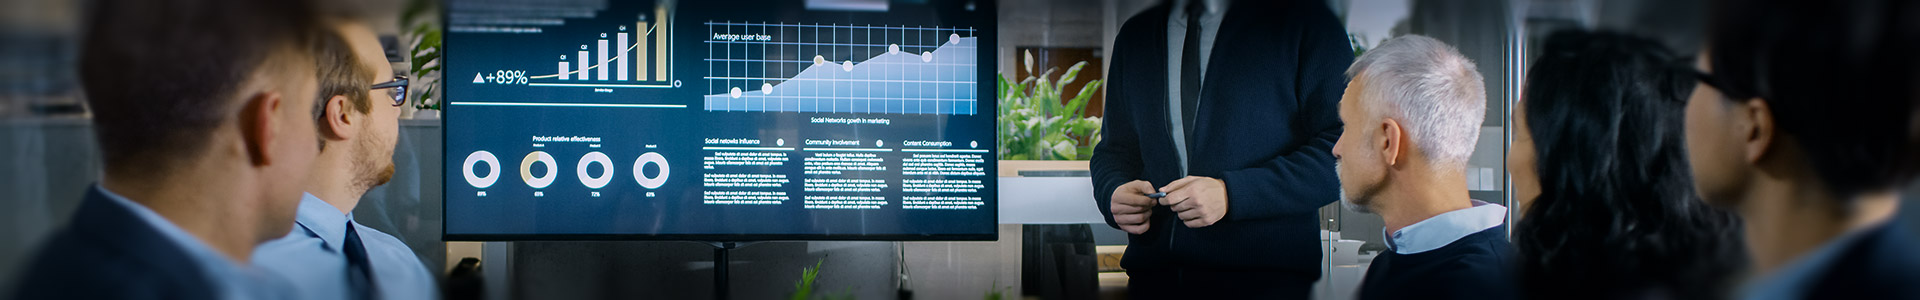 group of financial professionals having a meeting looking at a screen with financial graphs